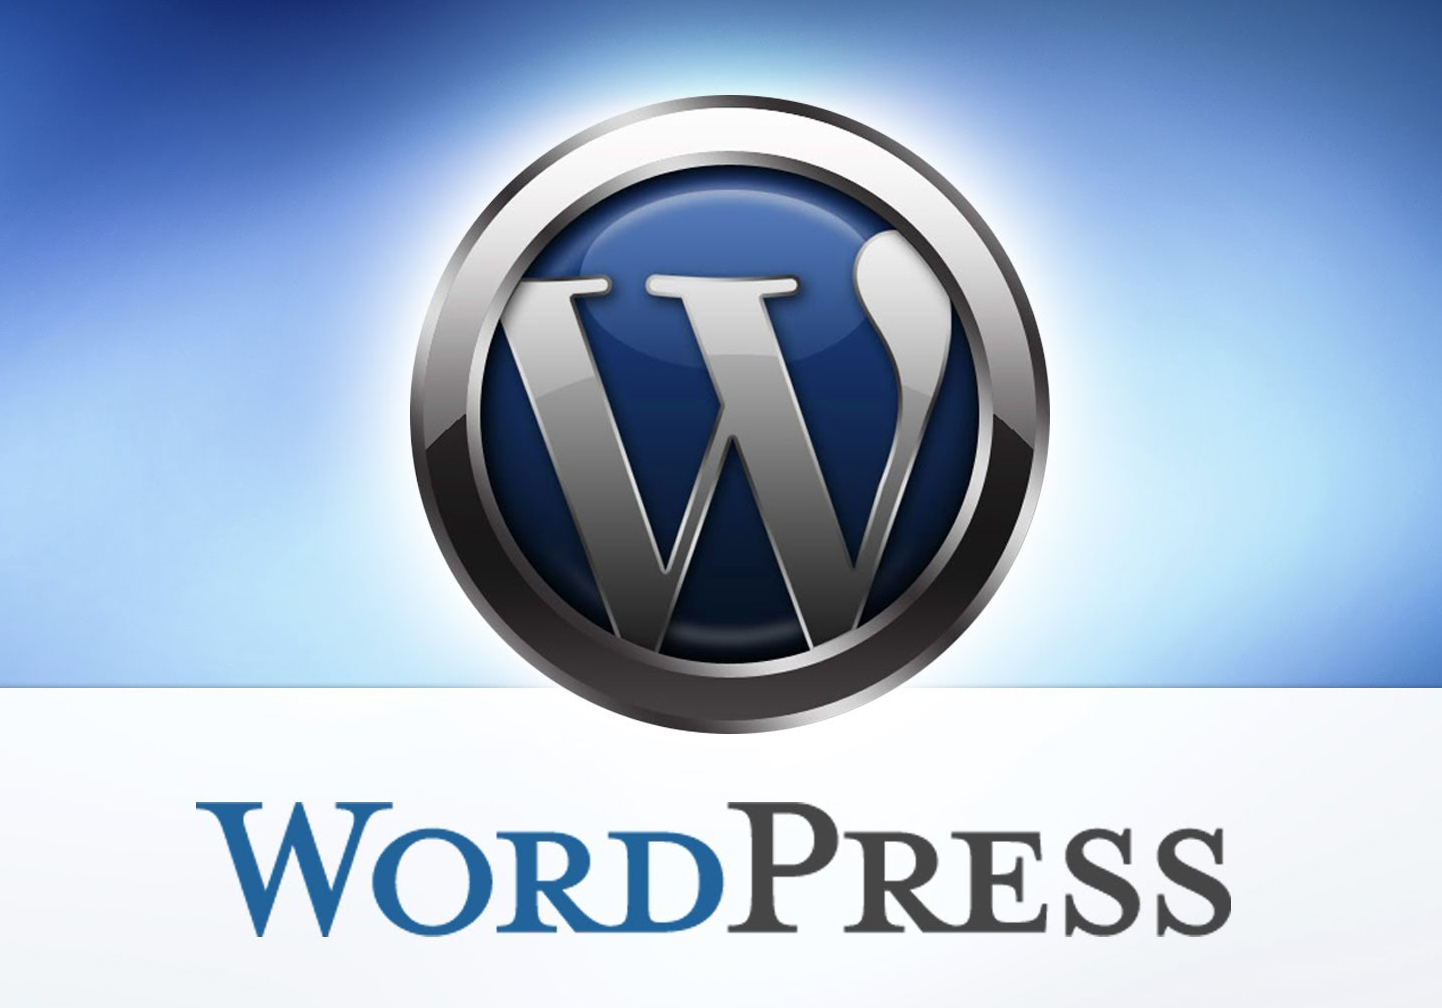 Create a professional website on WordPress